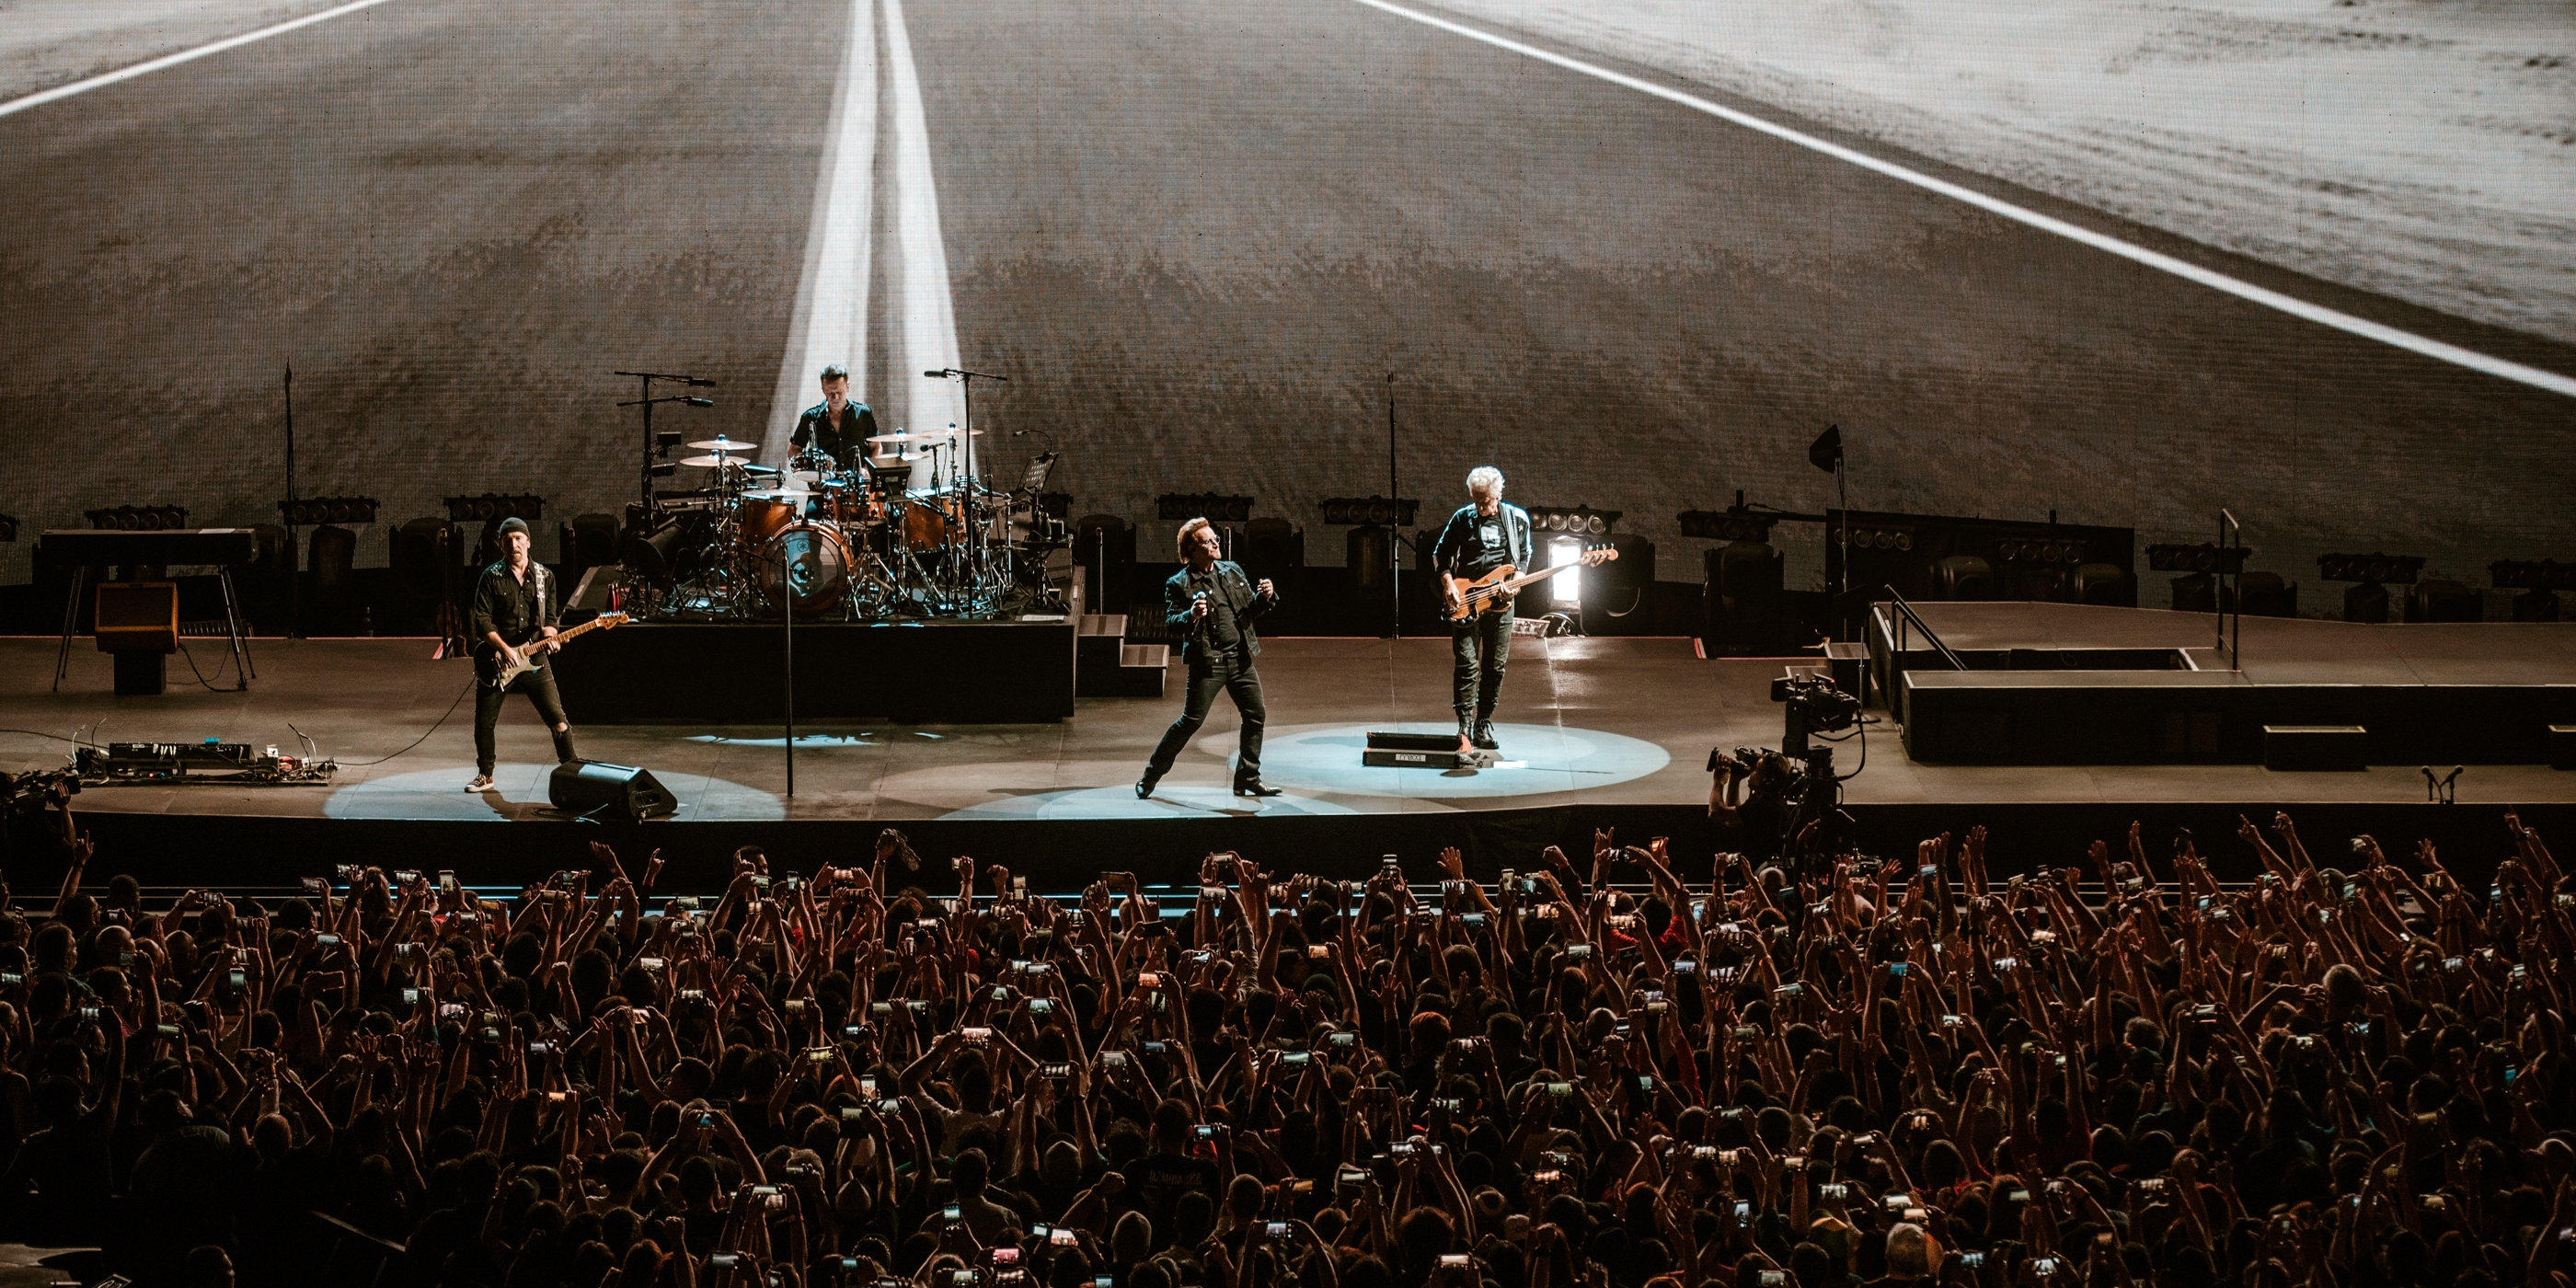 Forty years, long lines, and hours of traffic worth the wait: U2 Live at the Philippine Arena – gig report